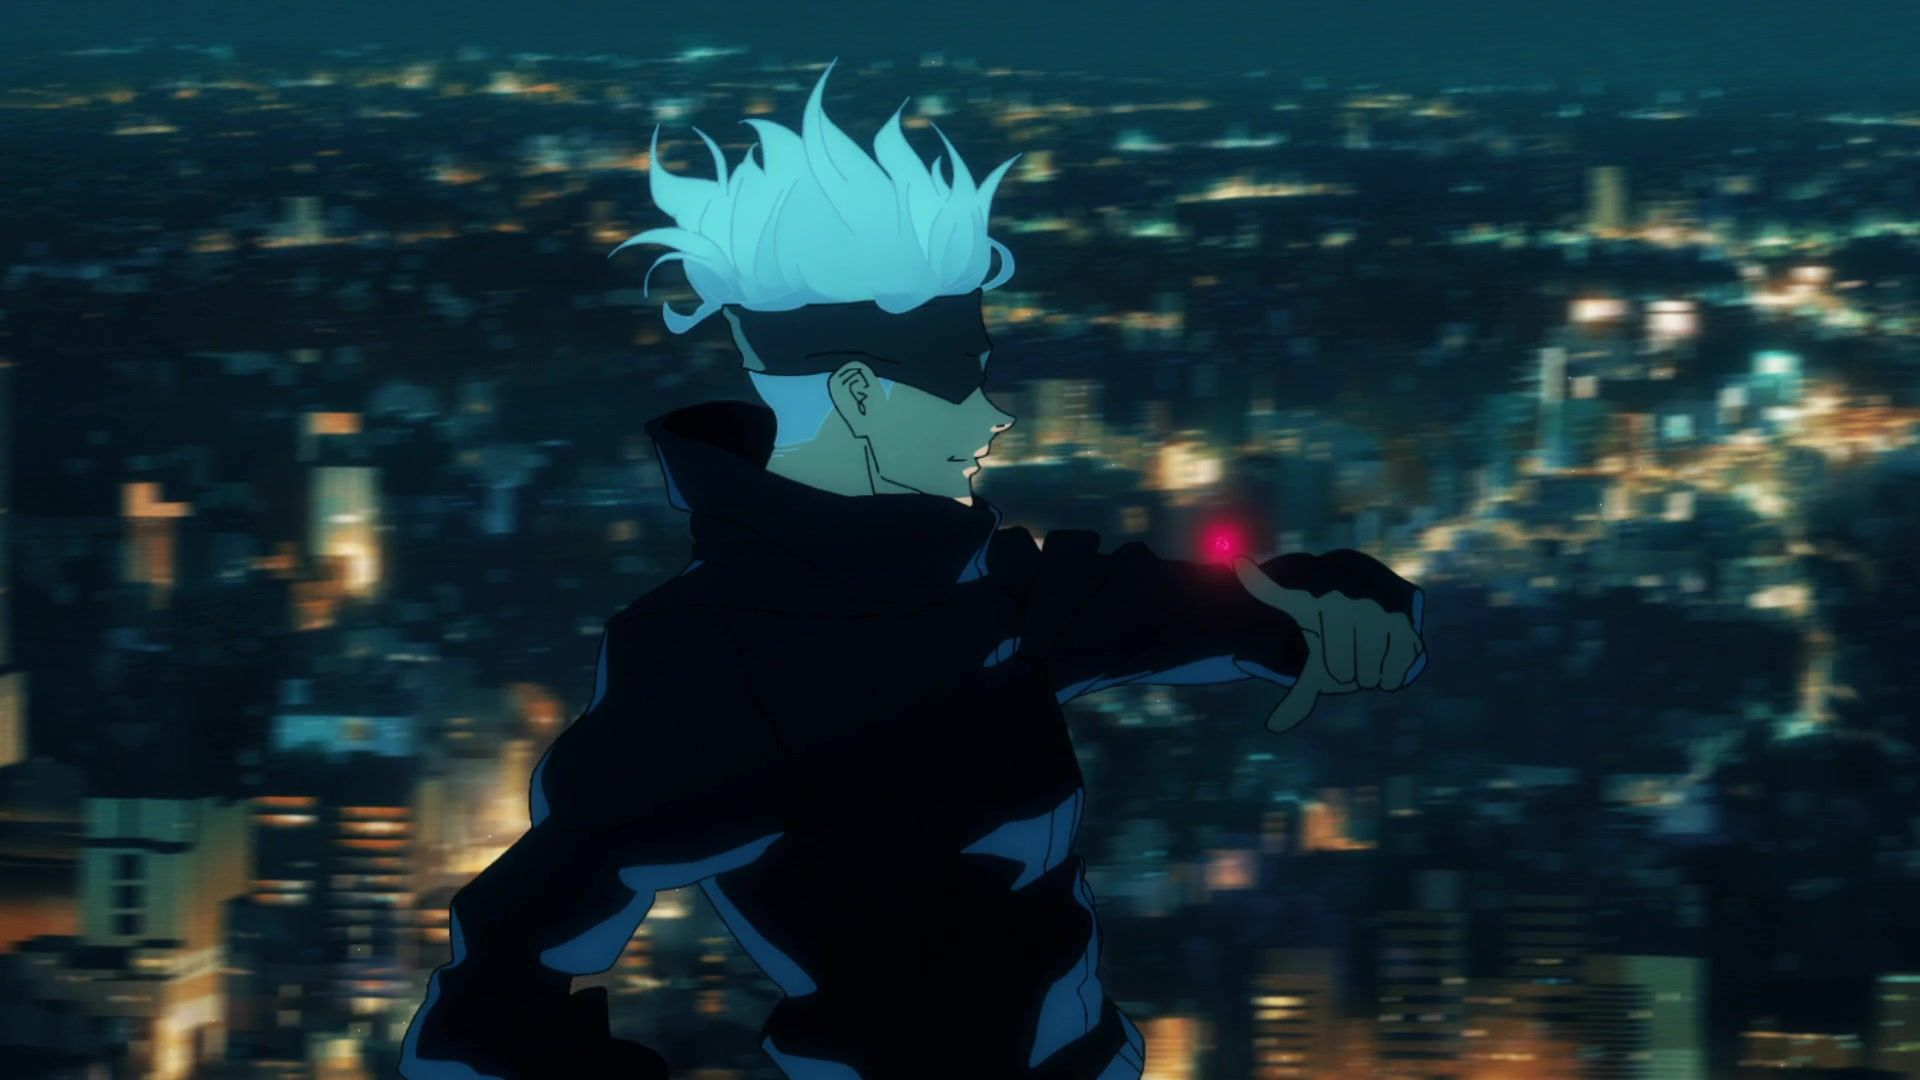 Jujutsu Kaisen episode 1 anime review: an electrifying introduction